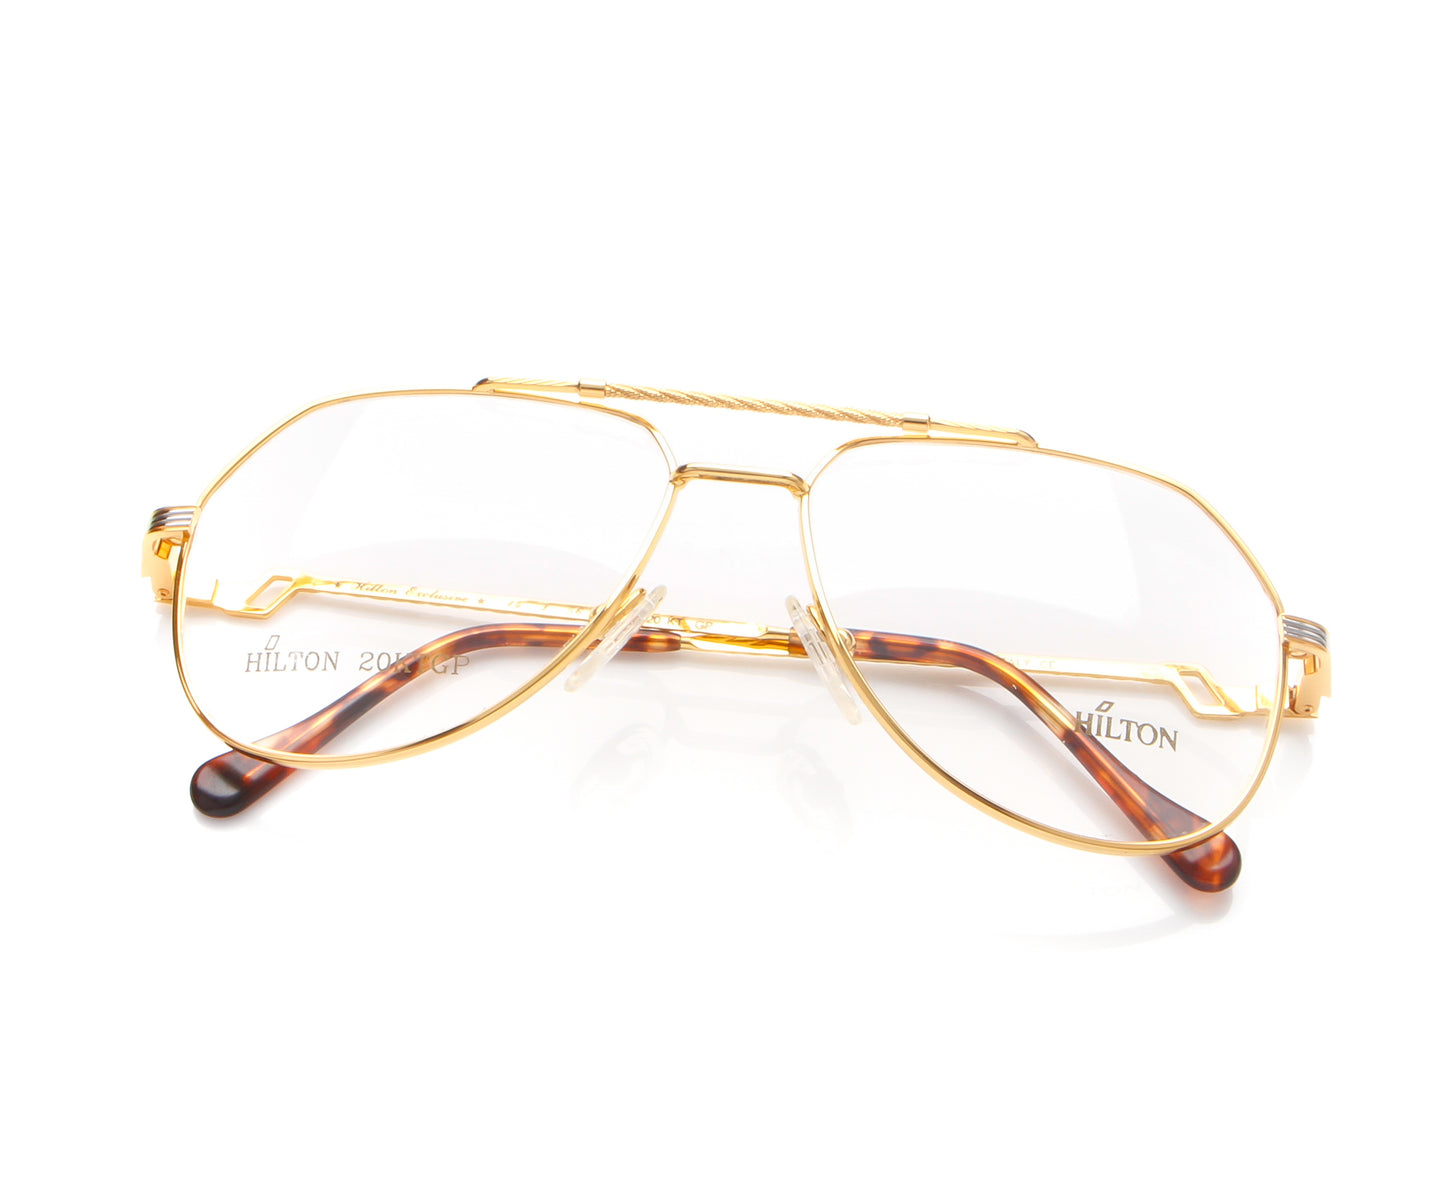 Vintage Hilton Exclusive 14 1 20KT GP Thumb, Hilton , glasses frames, eyeglasses online, eyeglass frames, mens glasses, womens glasses, buy glasses online, designer eyeglasses, vintage sunglasses, retro sunglasses, vintage glasses, sunglass, eyeglass, glasses, lens, vintage frames company, vf